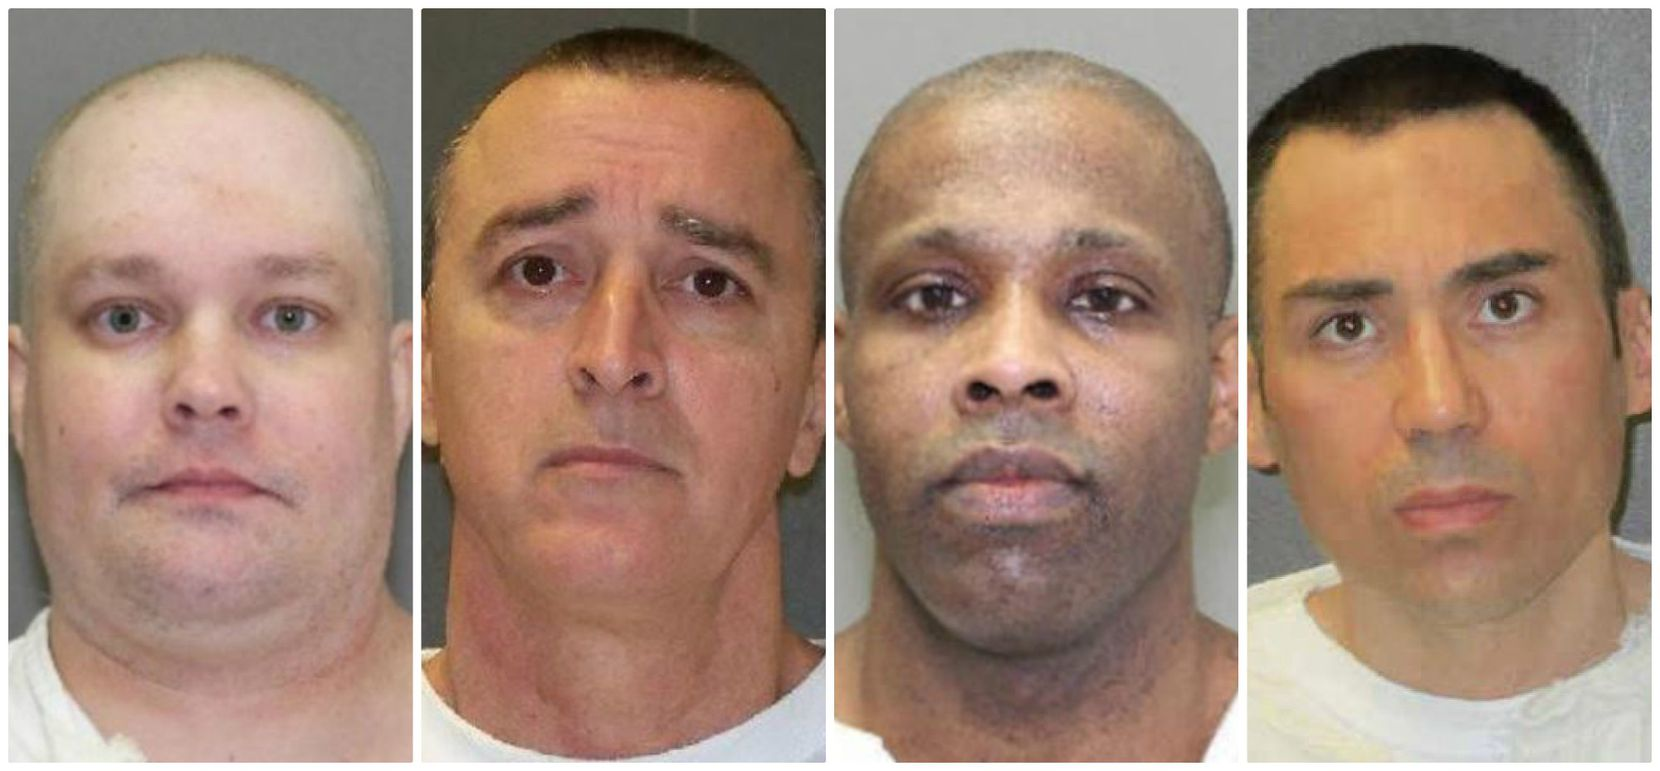 The four men sent to Texas' death row in 2017 (from left): William Hudson, who killed six people on a camping trip in Anderson County; John Falk, whose escape from a Huntsville-area prison led to the death of a correctional officer; Joseph Colone, who killed a Beaumont woman and her 16-year-old daughter; and Billy Tracy, who beat a prison guard to death at the Telford Unit.